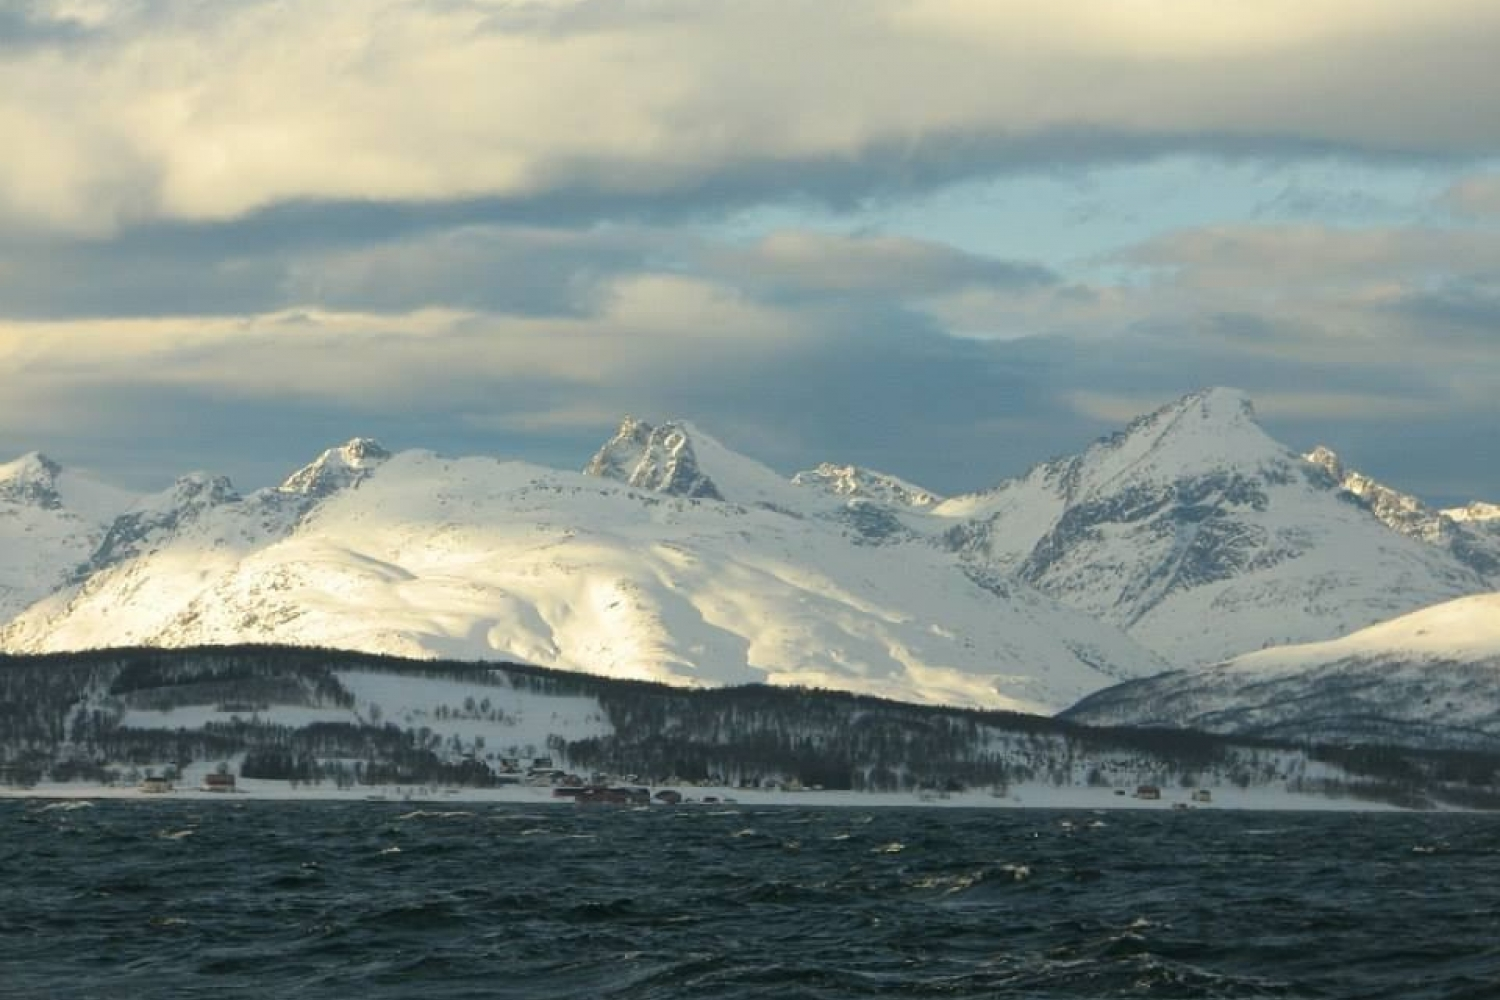 Sea and snowy mountains